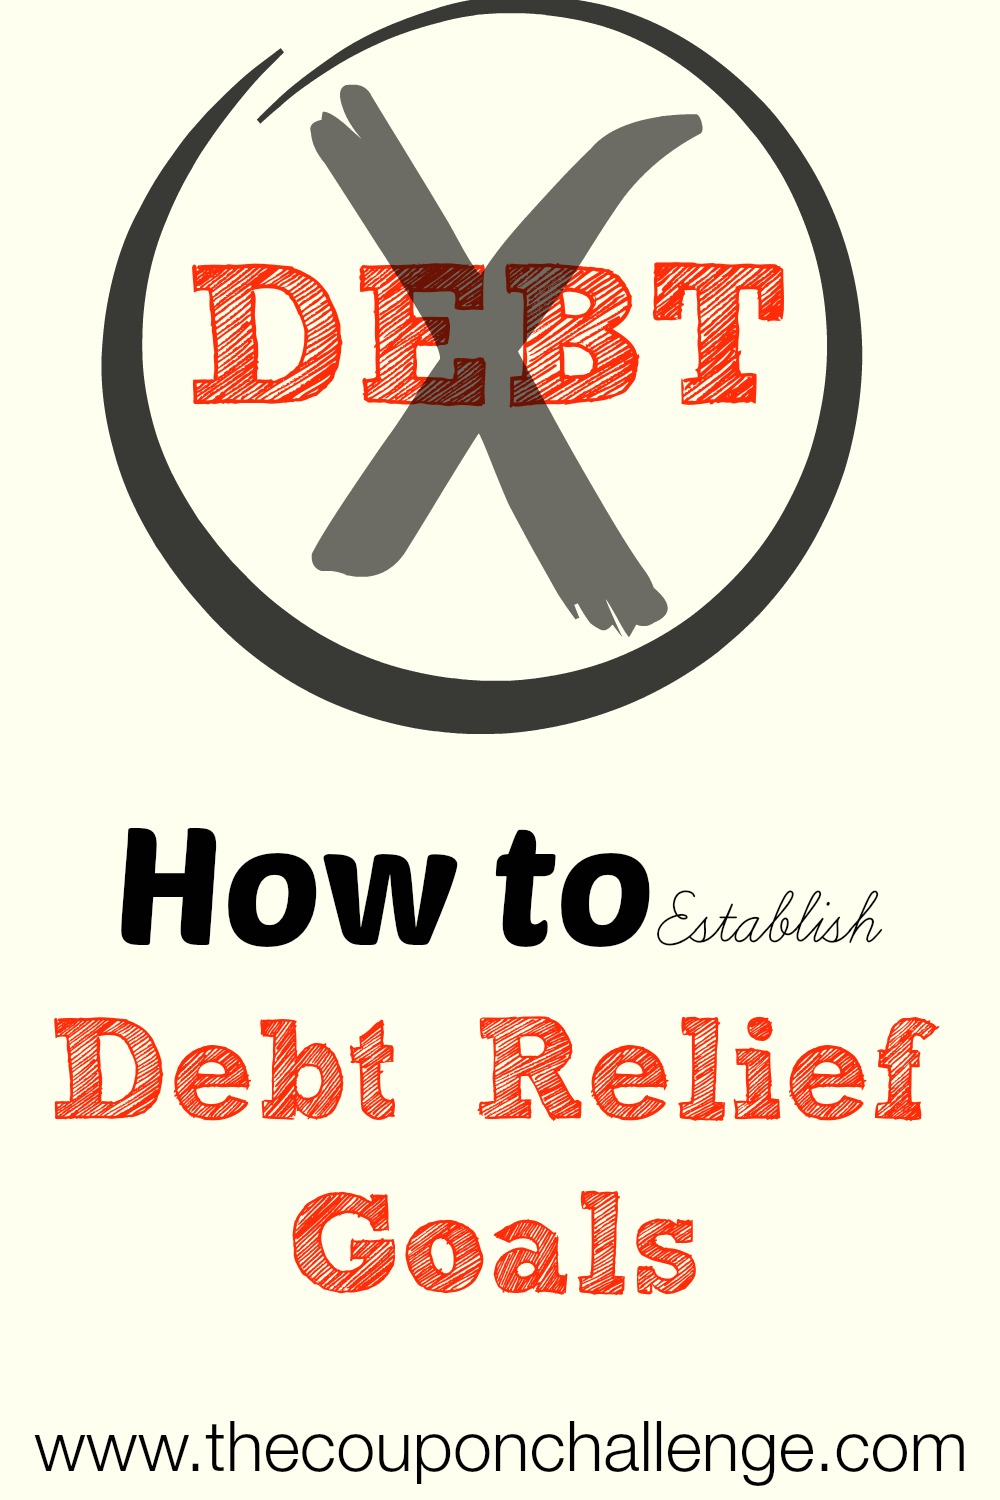 Establishing Debt Relief Goals